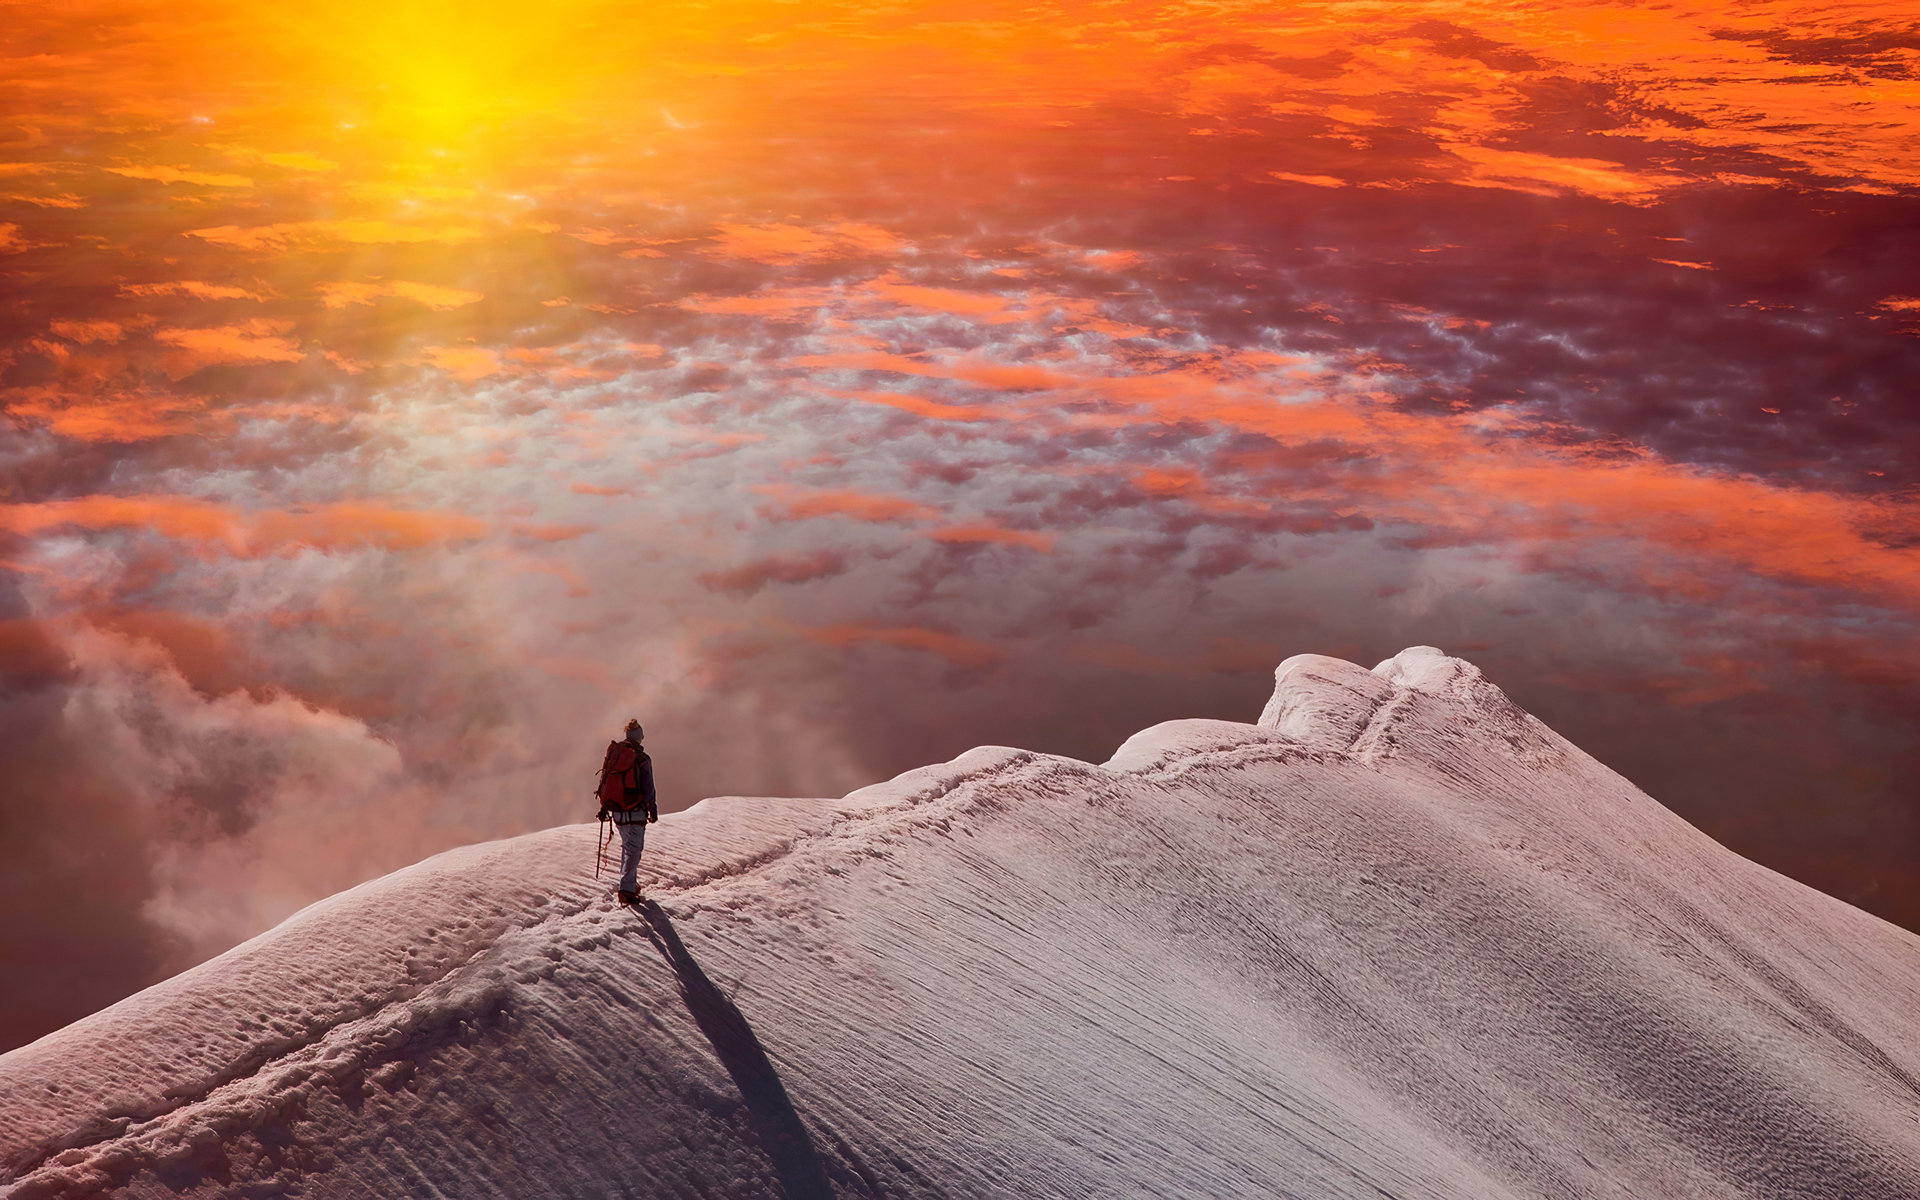 standing-at-snowy-peak-mountain-sunset-fz.jpg